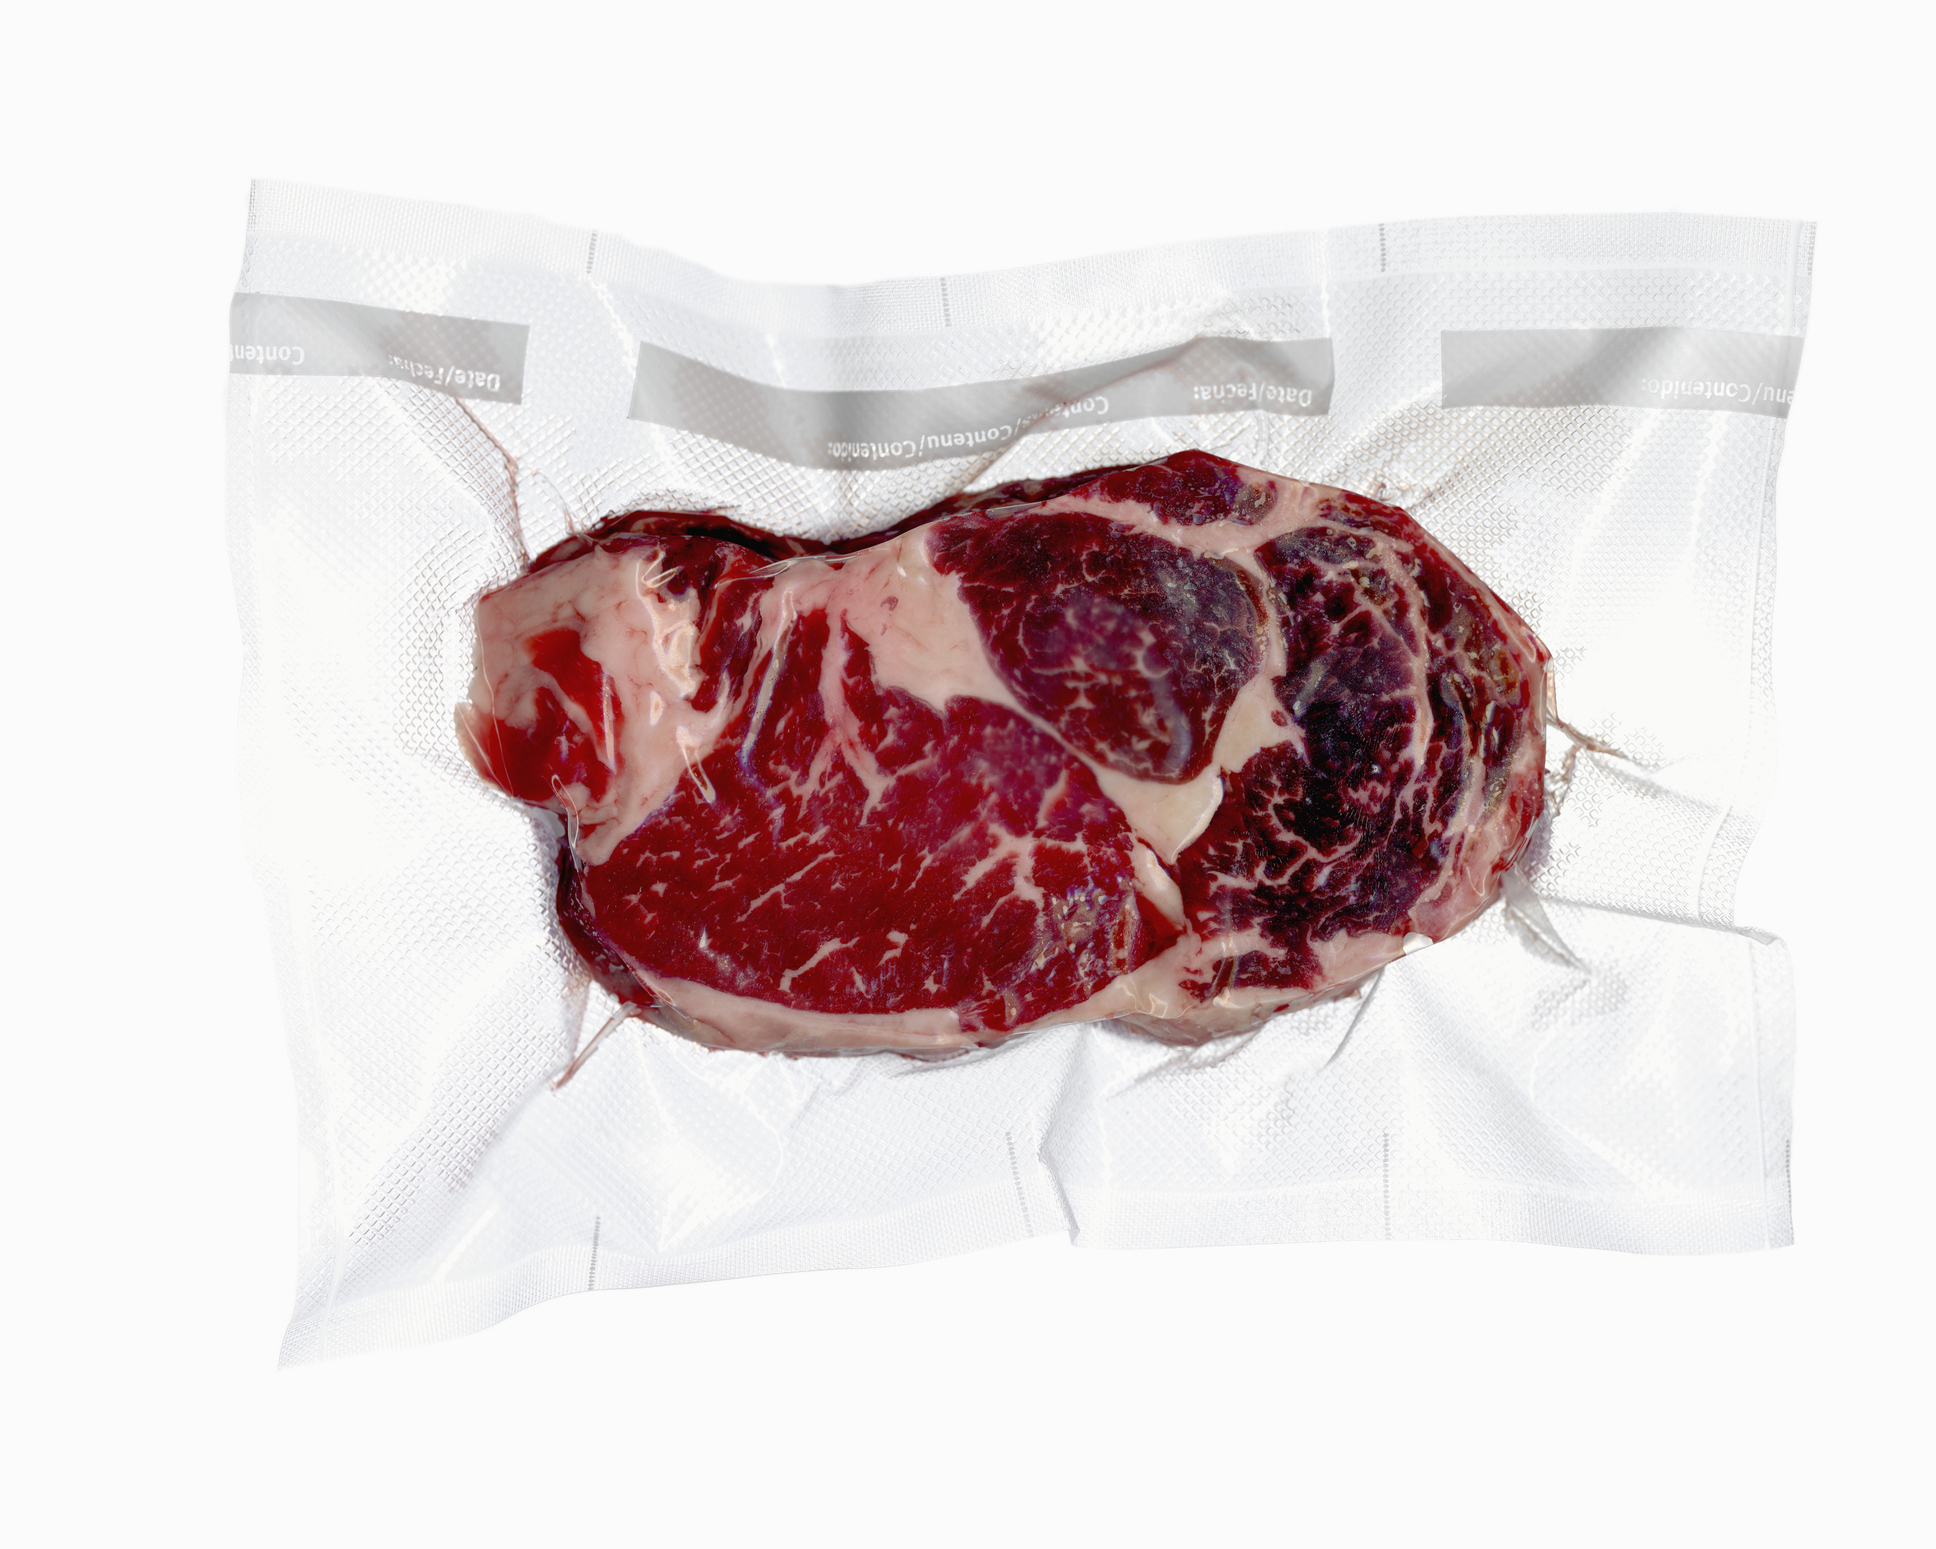 getty-meat-in-plastic-image